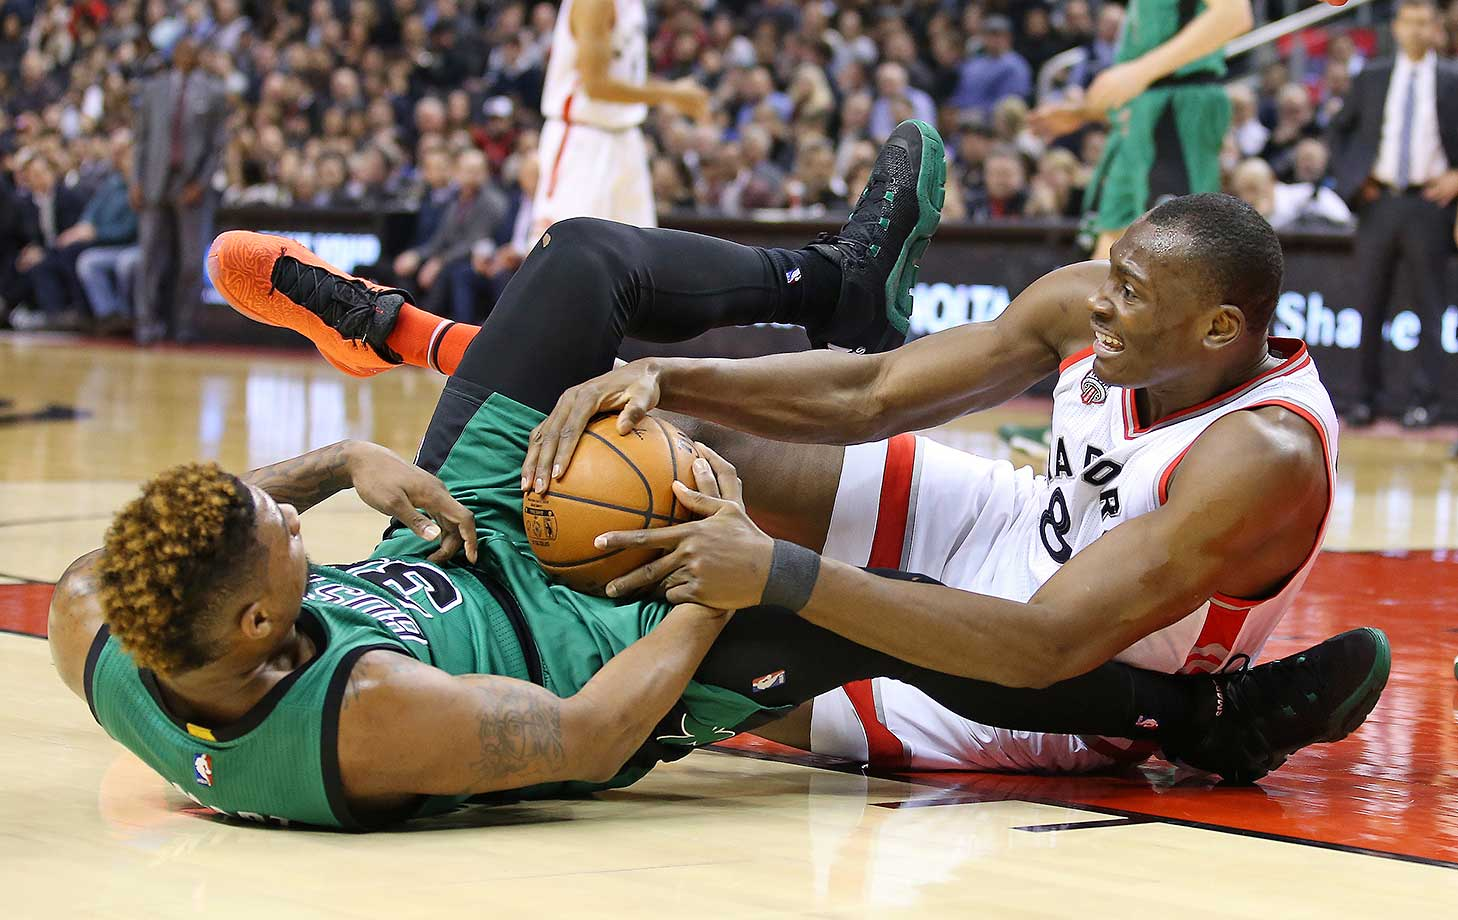 Marcus Smart of the Boston Celtics battles for a ball against Bismack Biyombo of the Toronto Raptors.